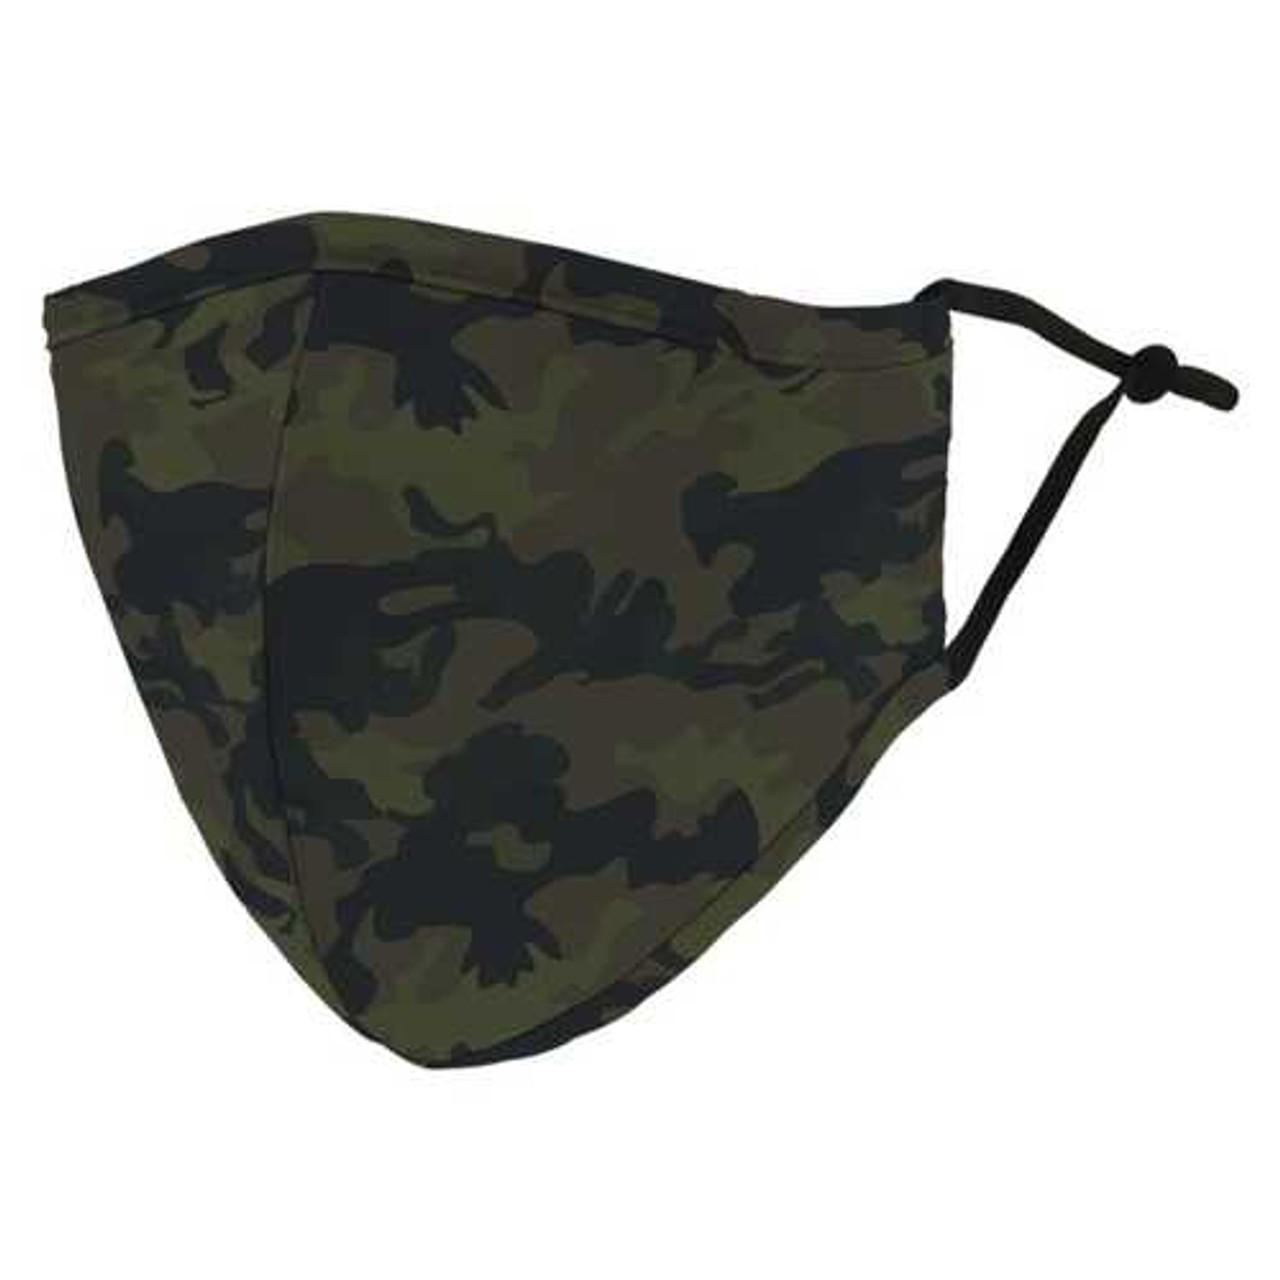 Weddingstar 5525-84 Adult Reusable/Washable Cloth Face Mask with Filter Pocket (Camo) R810-WDS552584